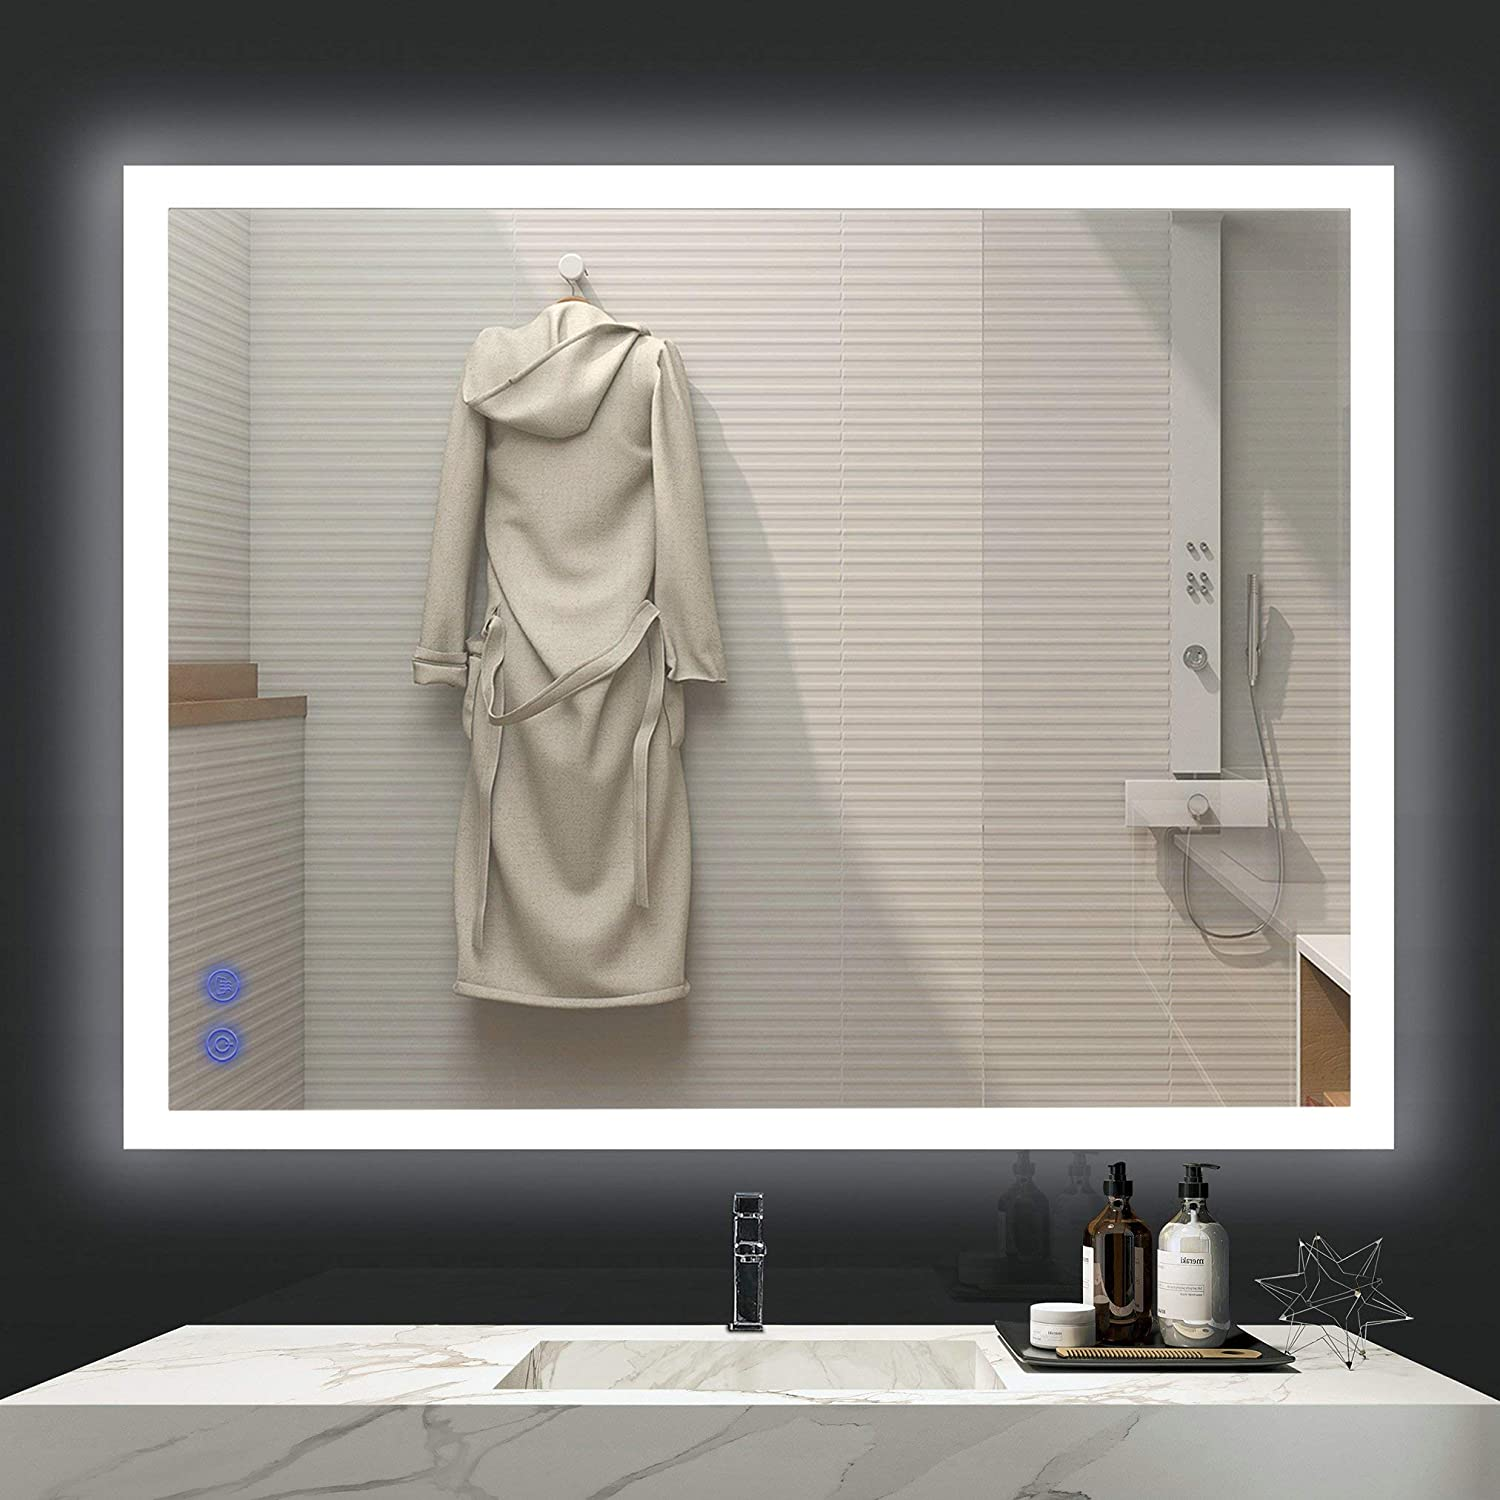 VENETIO 36 x 28 Inch LED Lighted Mirror for Bathroom Vanity Wall Mounted Frameless Makeup Mirror